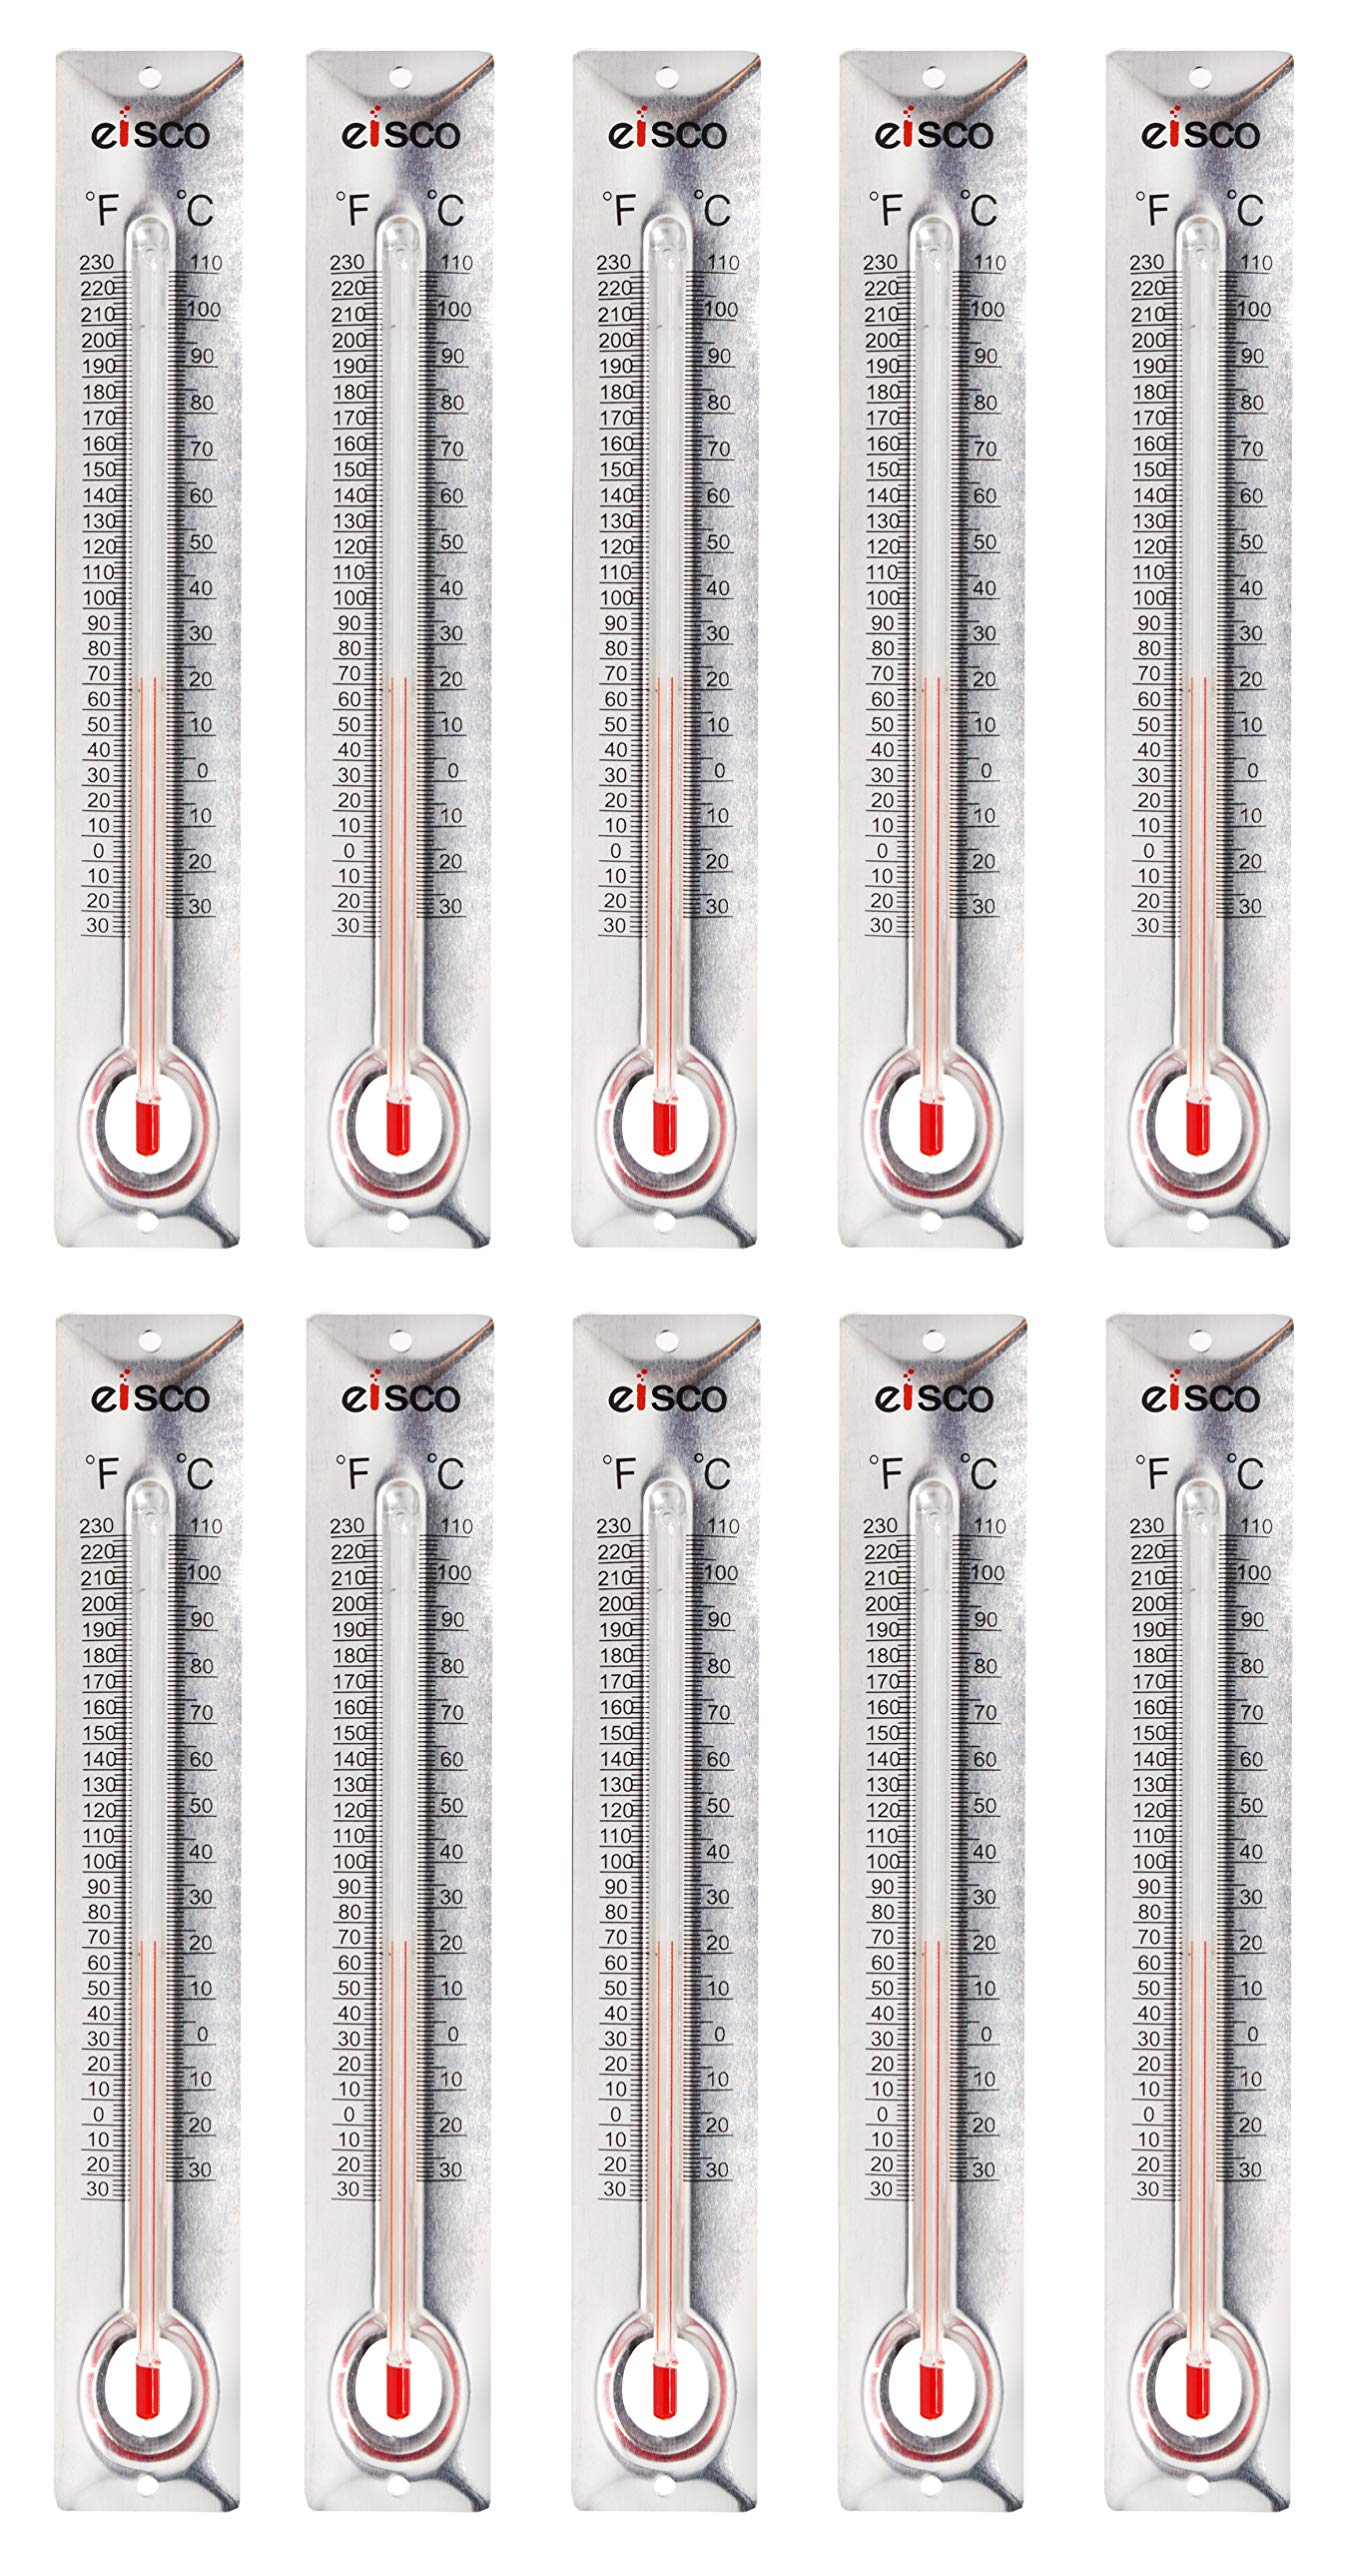 10 Pack - Aluminum Thermometers, -30 to 110°C / 30 to 230°F, Measurement in Celsius & Fahrenheit - Aluminum Backing, Glass - Spirit Filled - 6.5'' Long, 1'' Wide - Eisco Labs